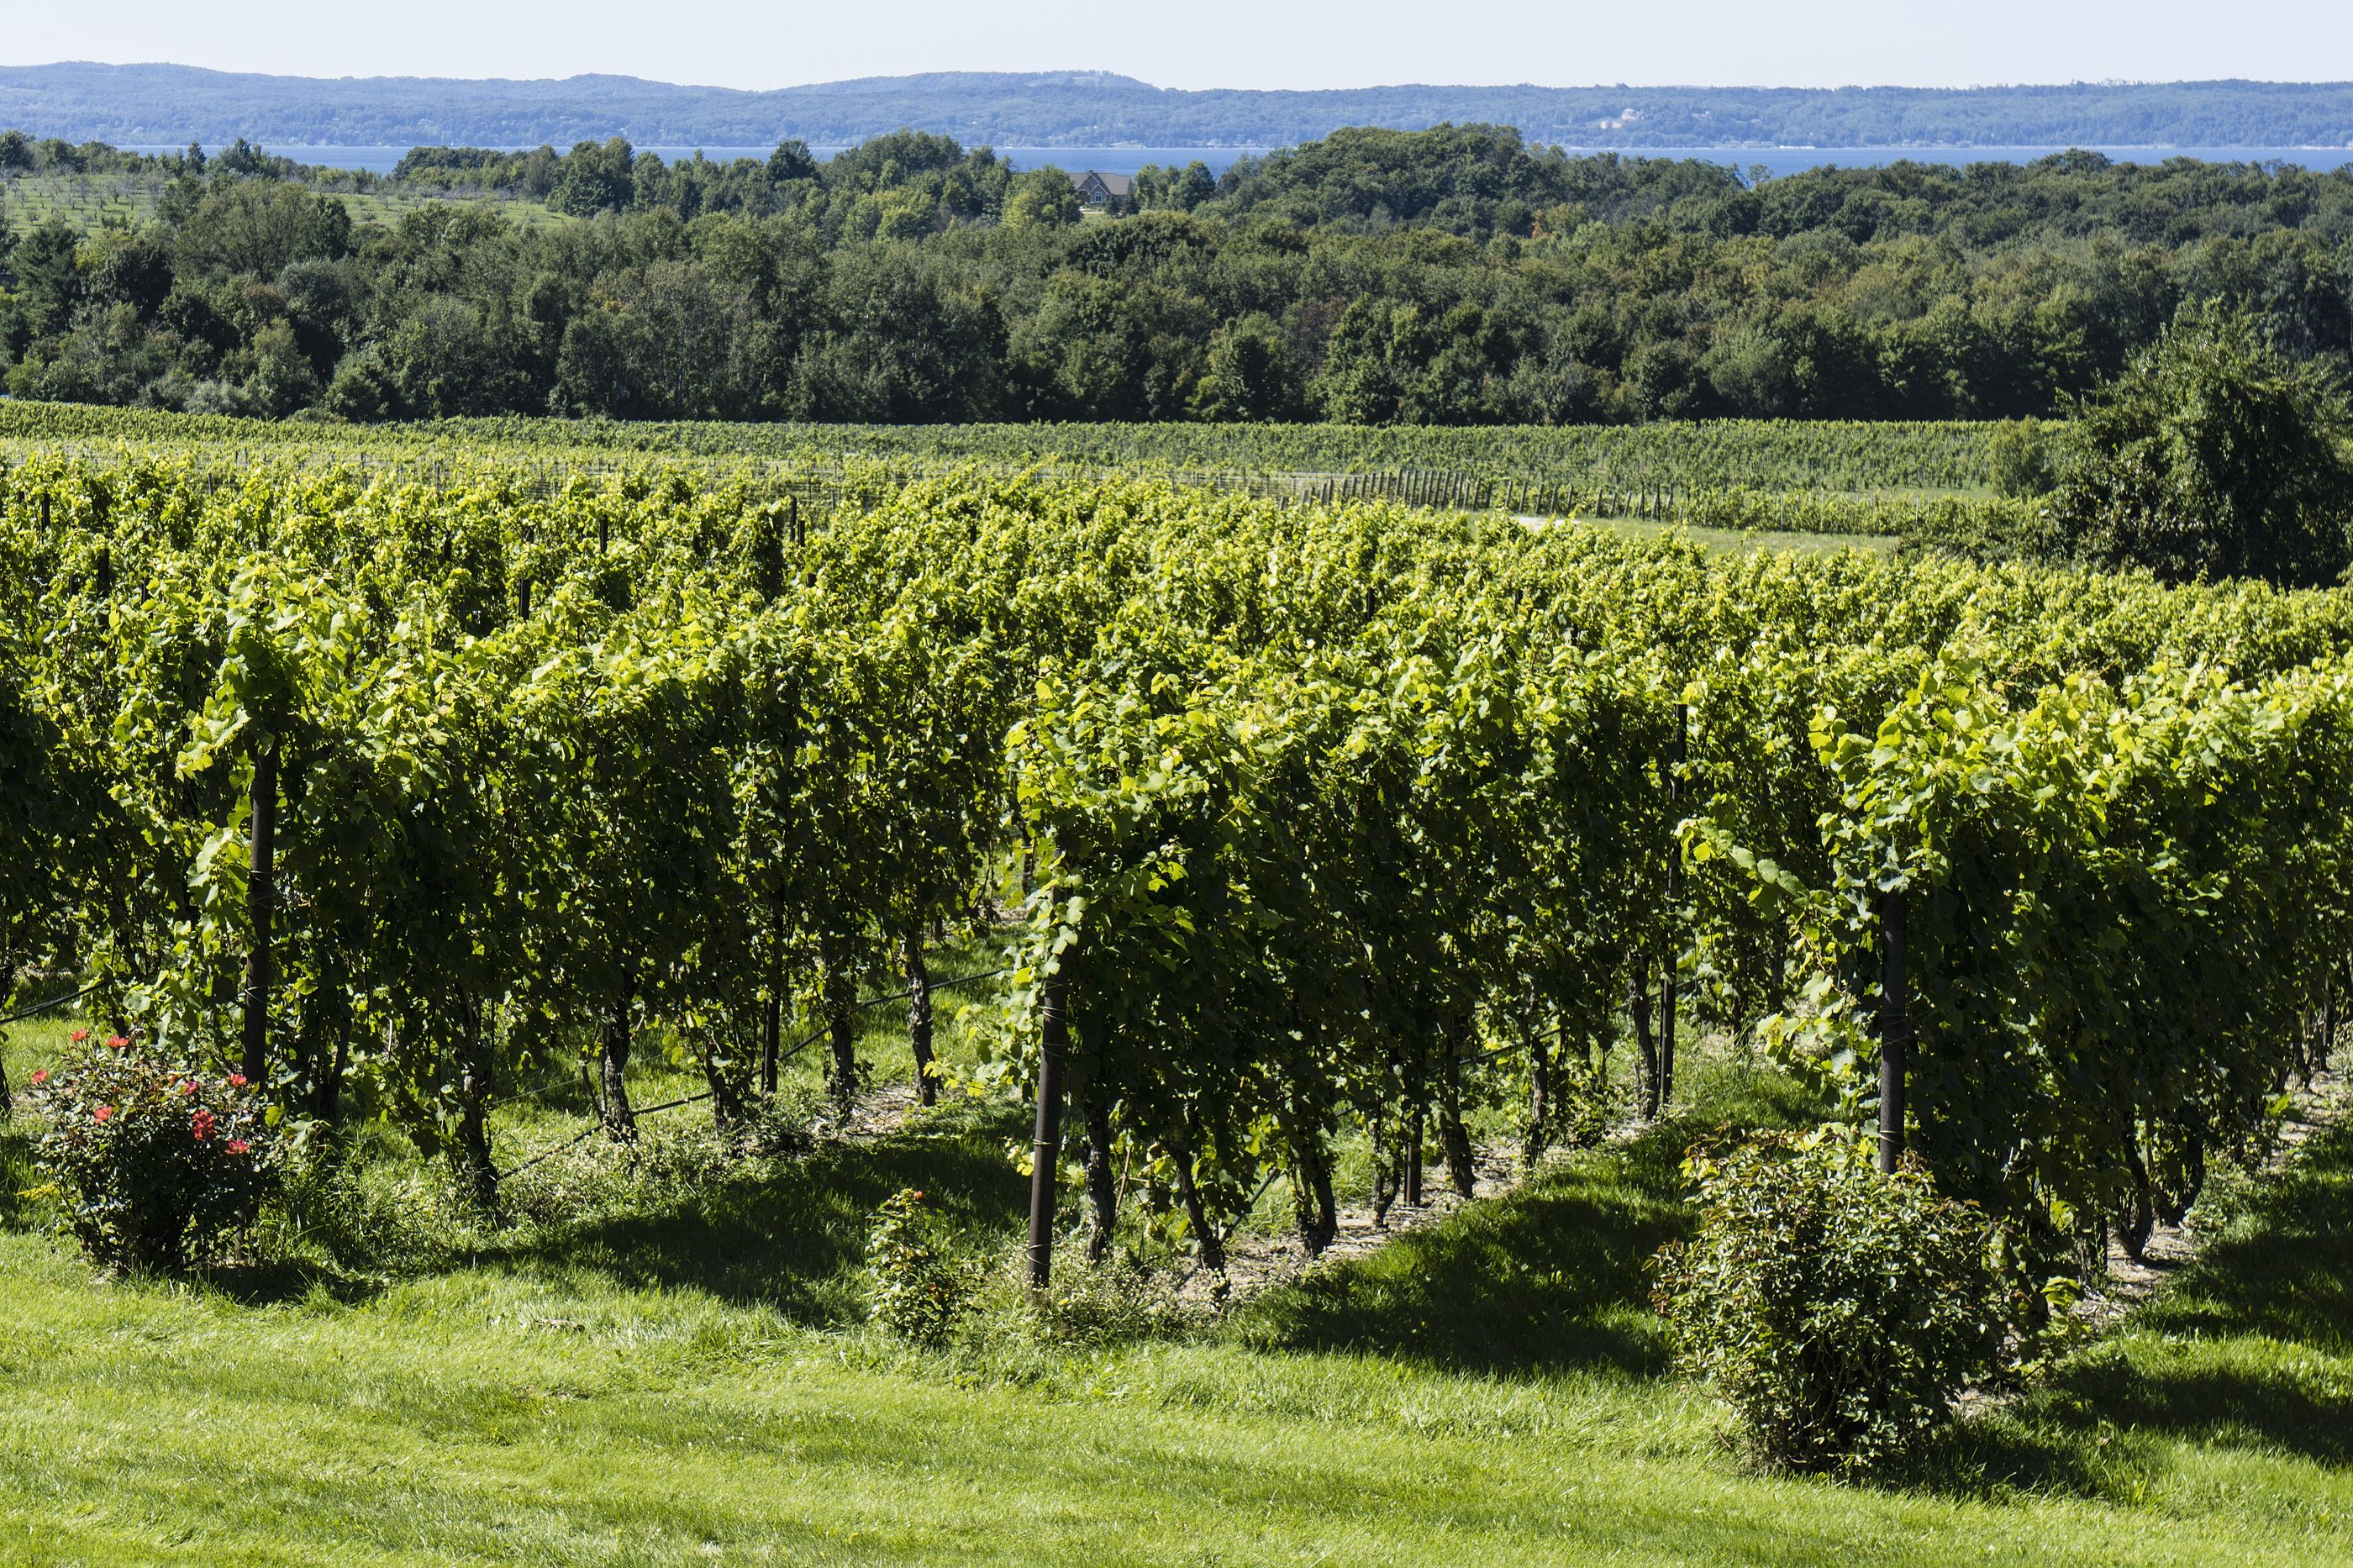 Grape vines in a vineyard on the Old Mission Peninsula outside of Traverse City, Michigan with Grand Traverse Bay in the background.